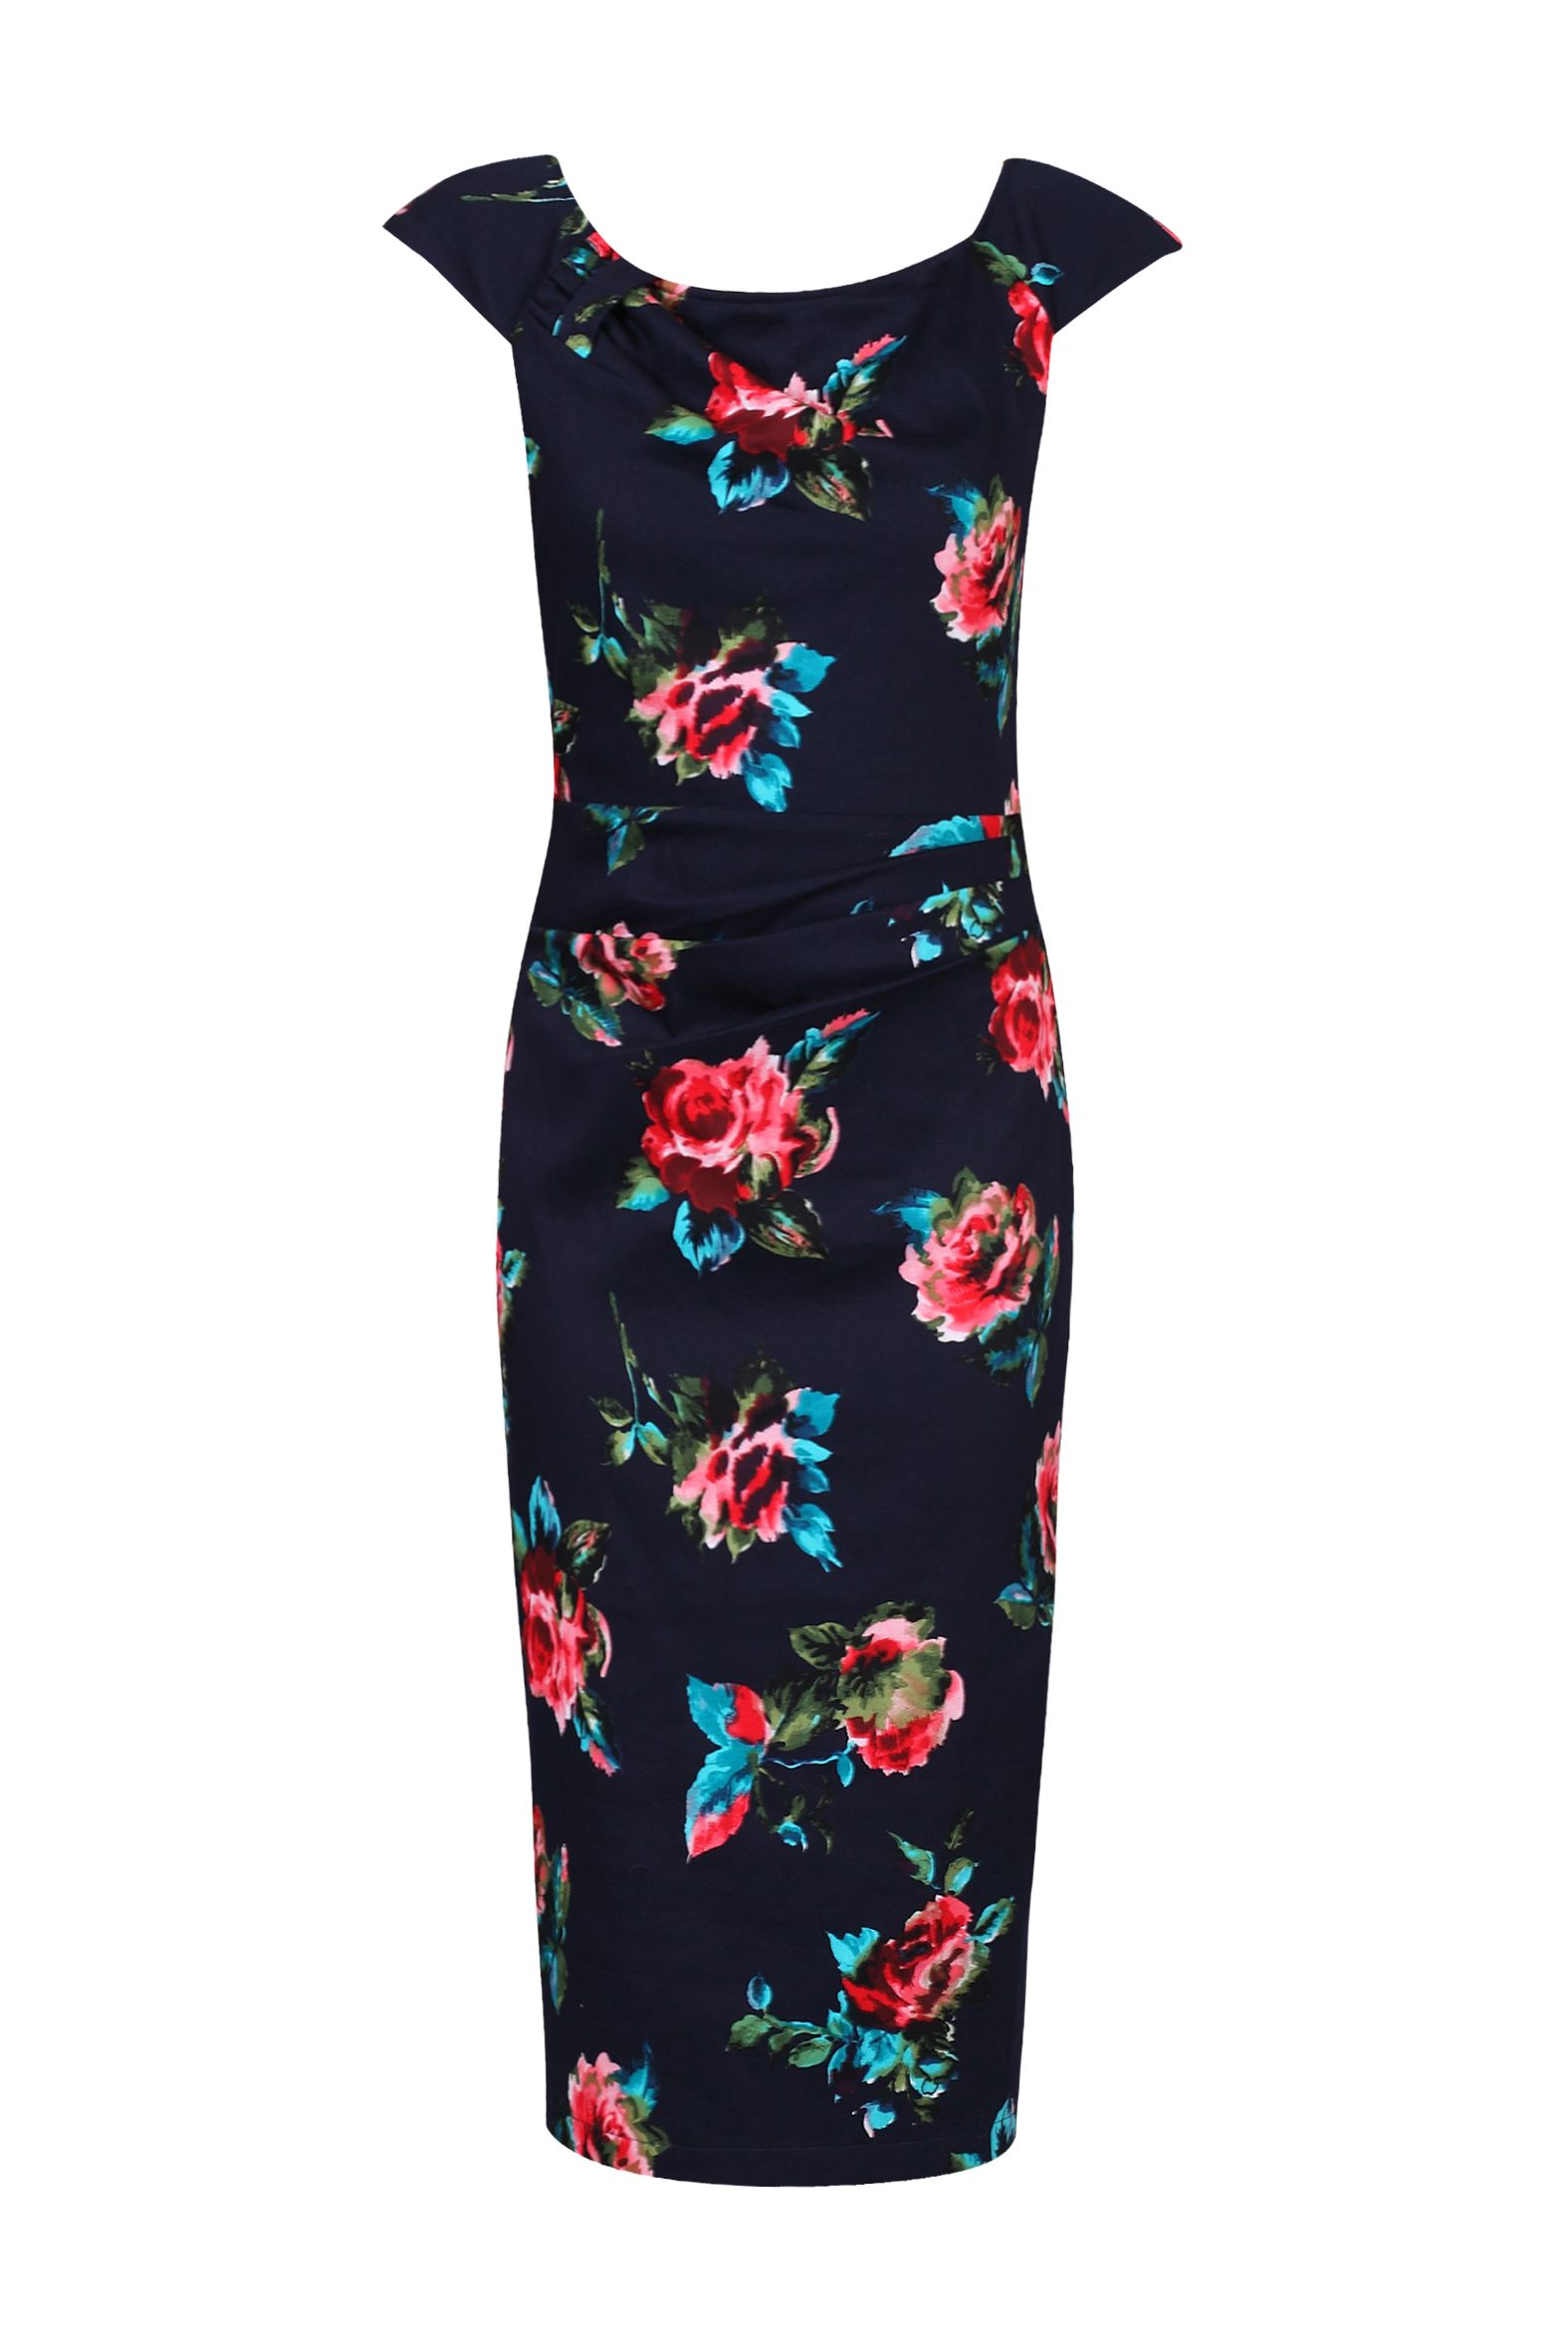 Jolie Moi Floral Print Wiggle Dress, Blue